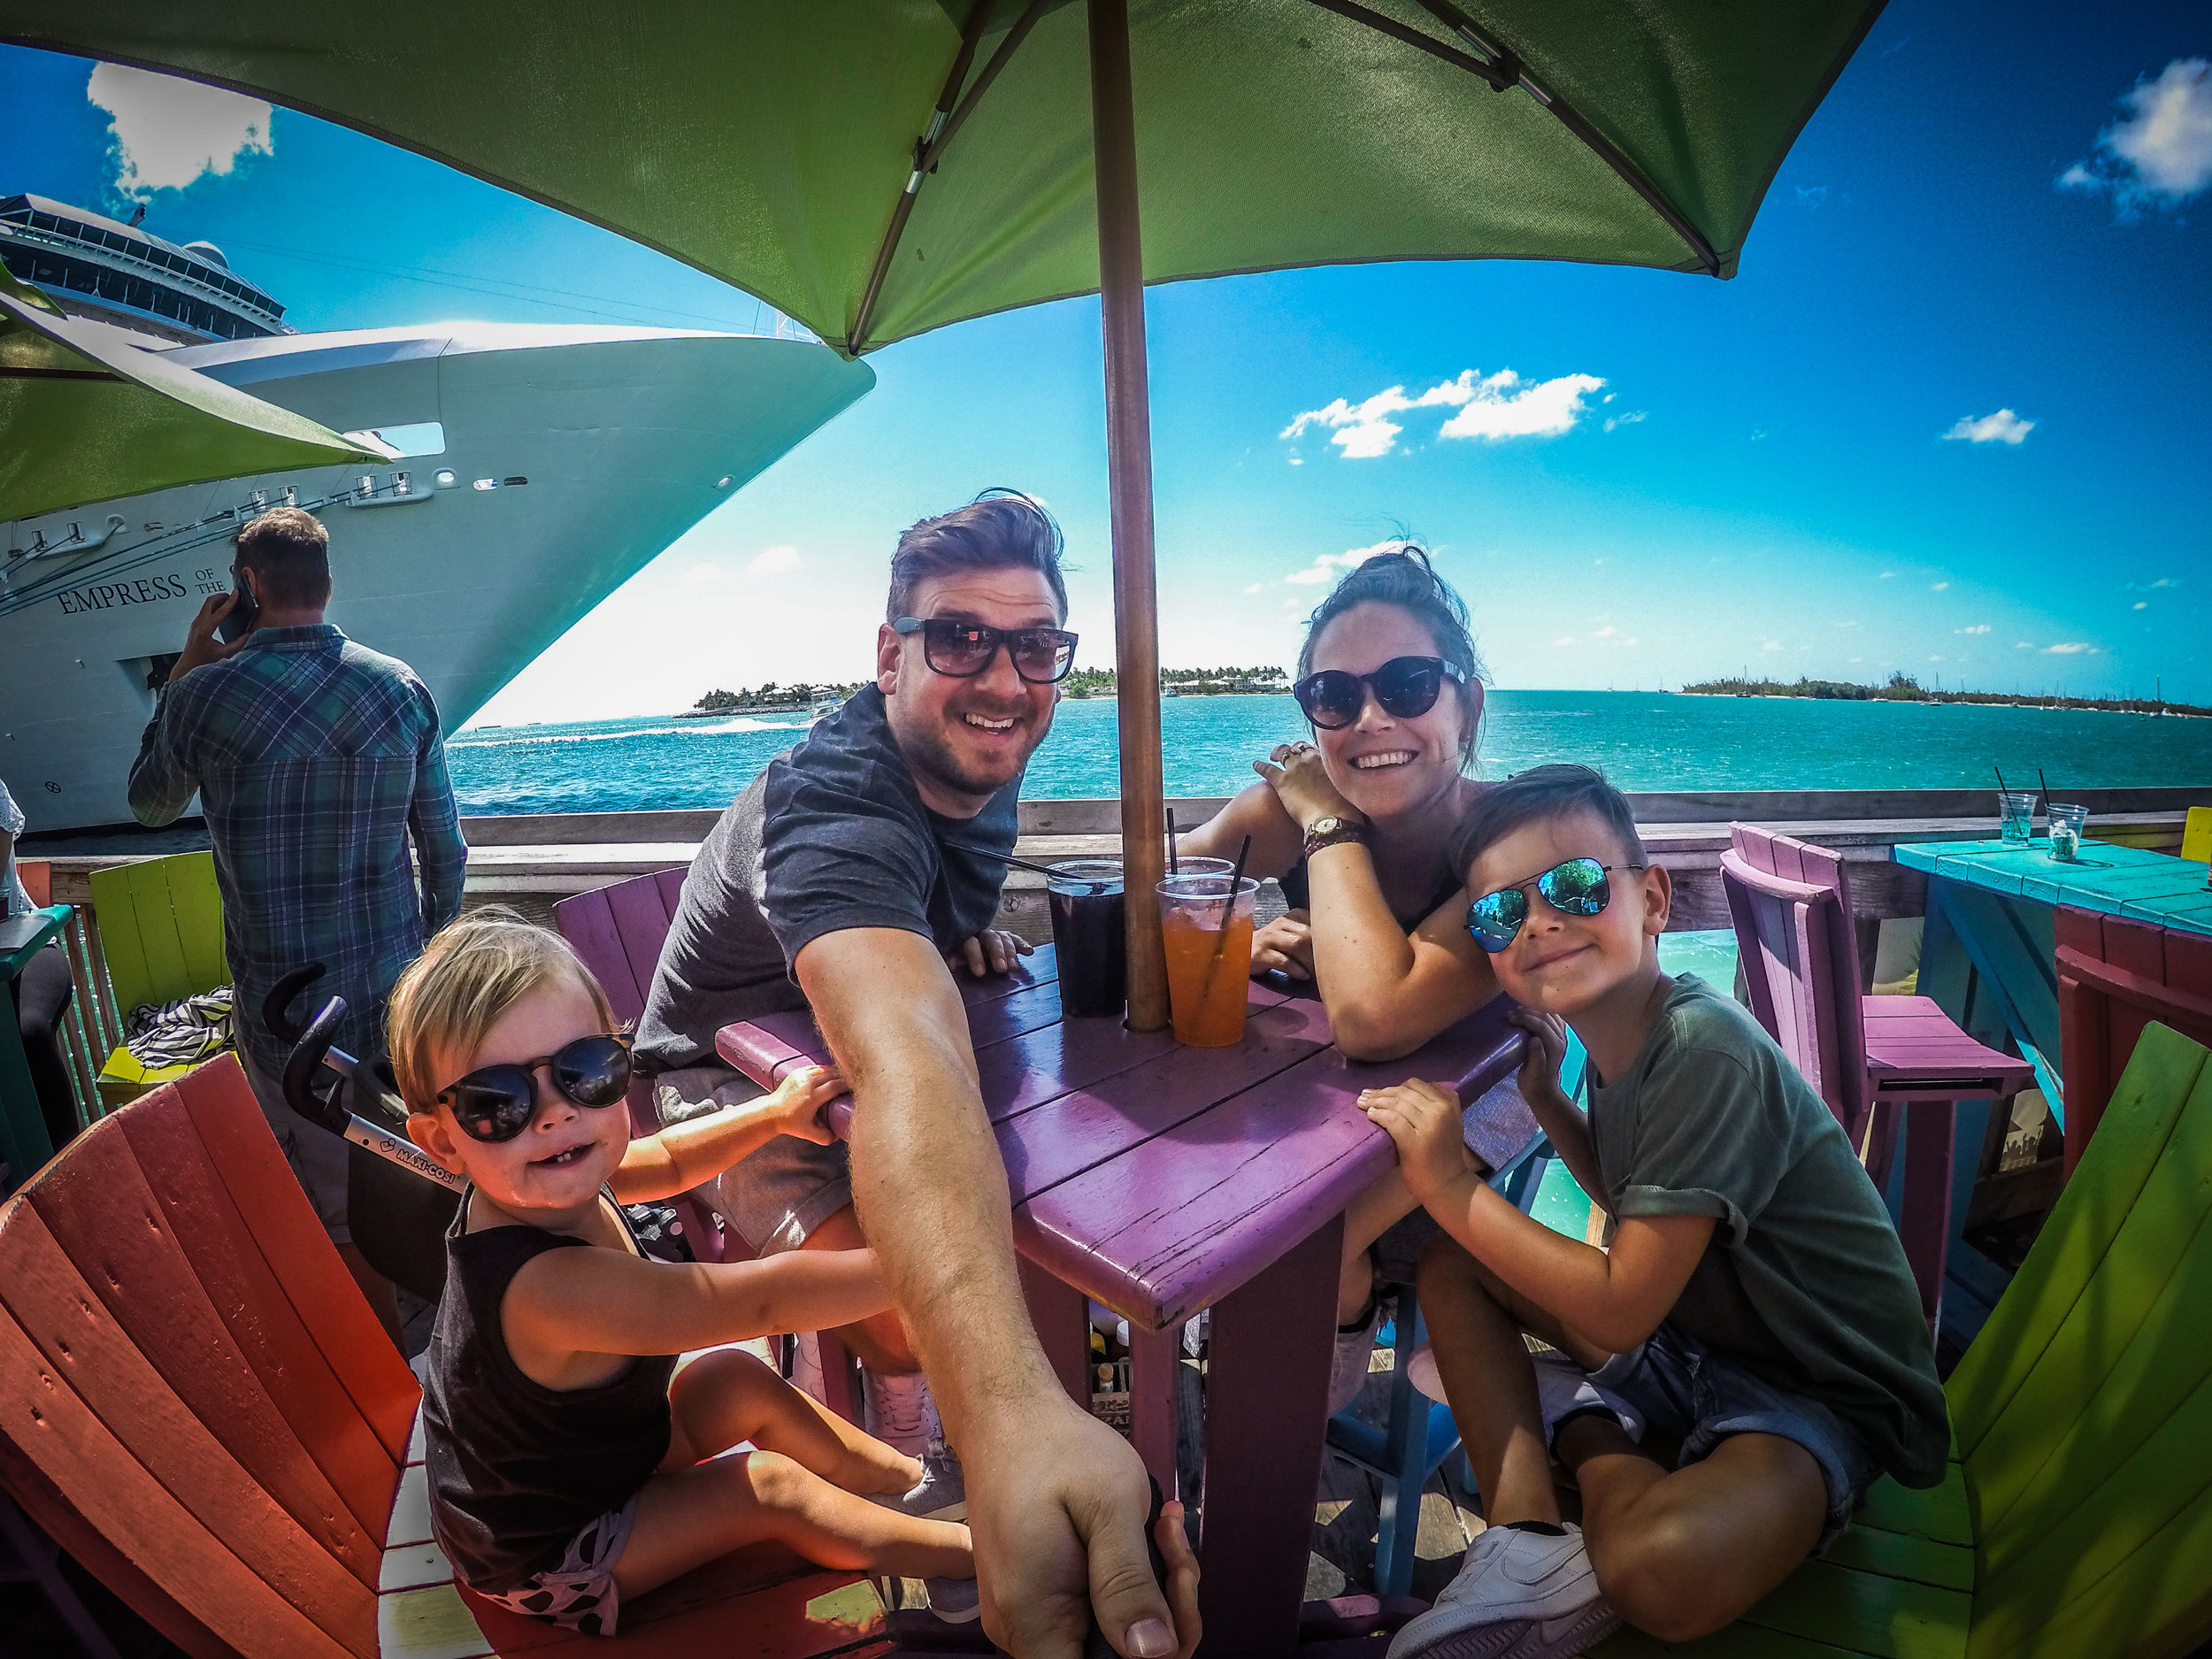 Florida_keys-_Key_west_To_do_reizen_met_kinderen-5.jpg